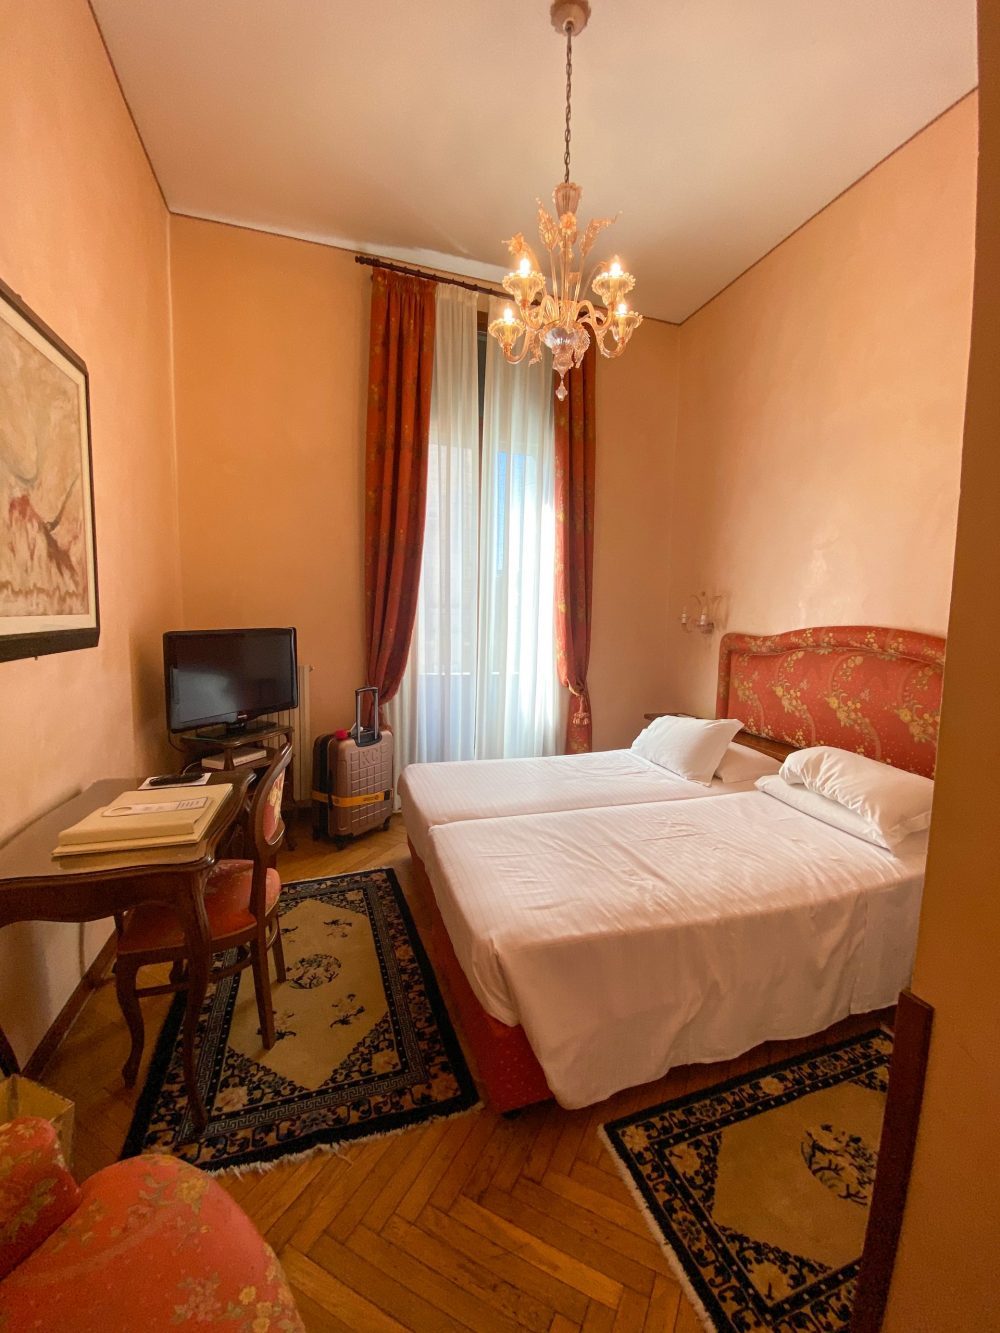 Double room in the Hotel Bonvecchiati, Venice, Italy.